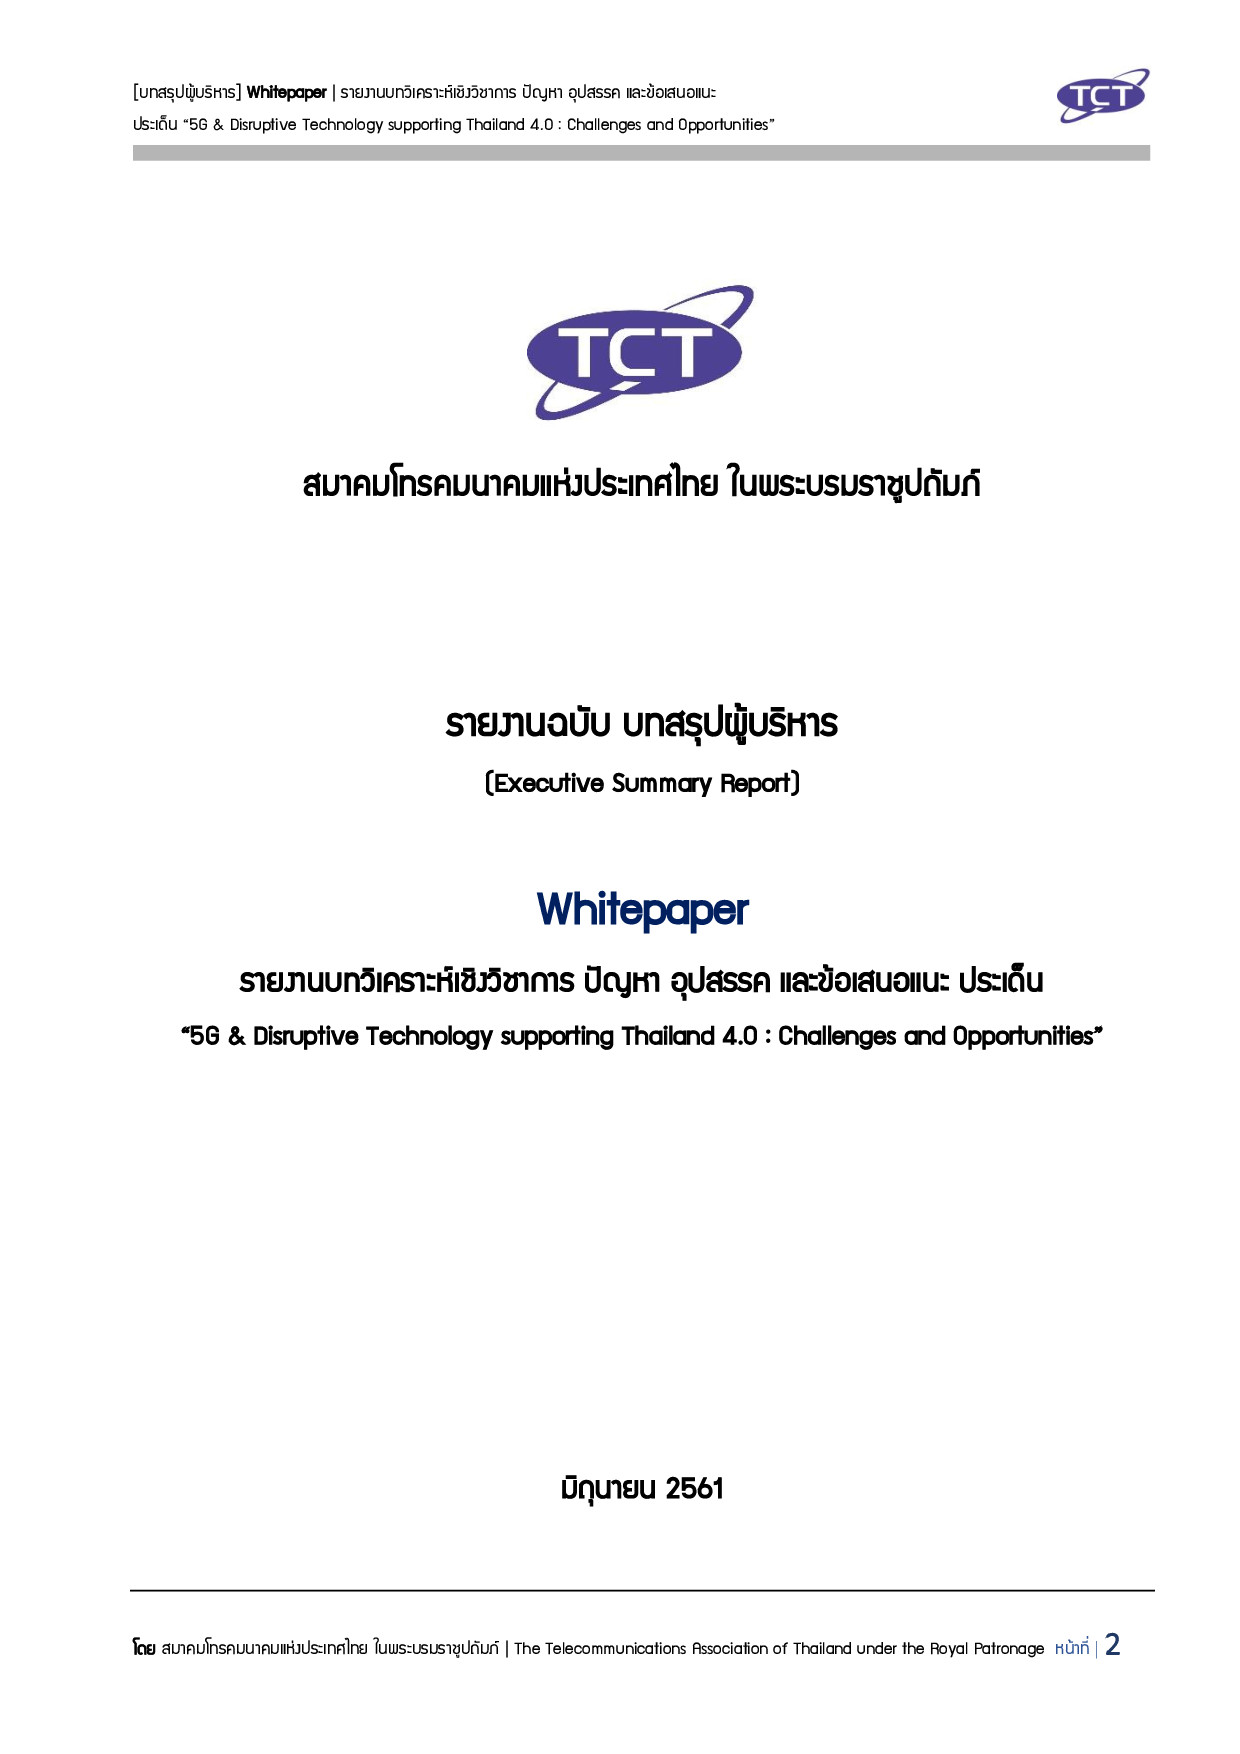 ExSum Report 5G Thai final v20 final submit p002